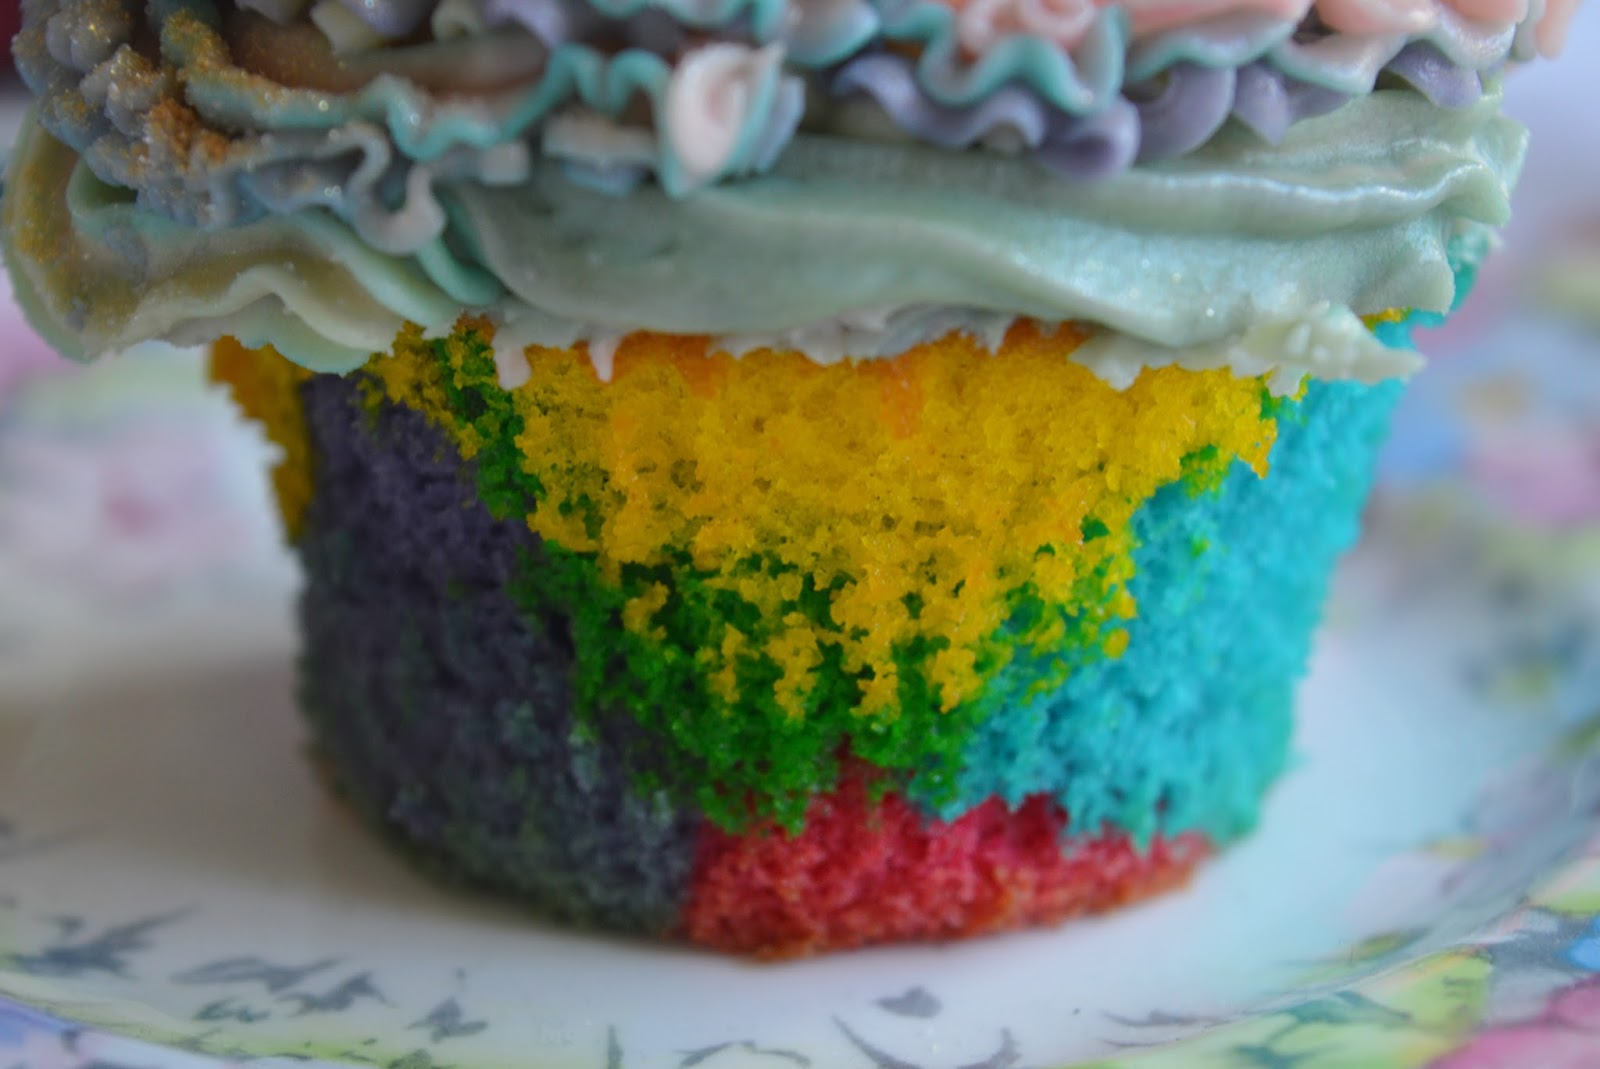 Zen colouring tesco - They Re Called Unicorn Mermaid Cupcakes Because Half The Swirls Came Out Light And Pretty Like Unicorns And The Others Came Out In A Mixture Of Colours